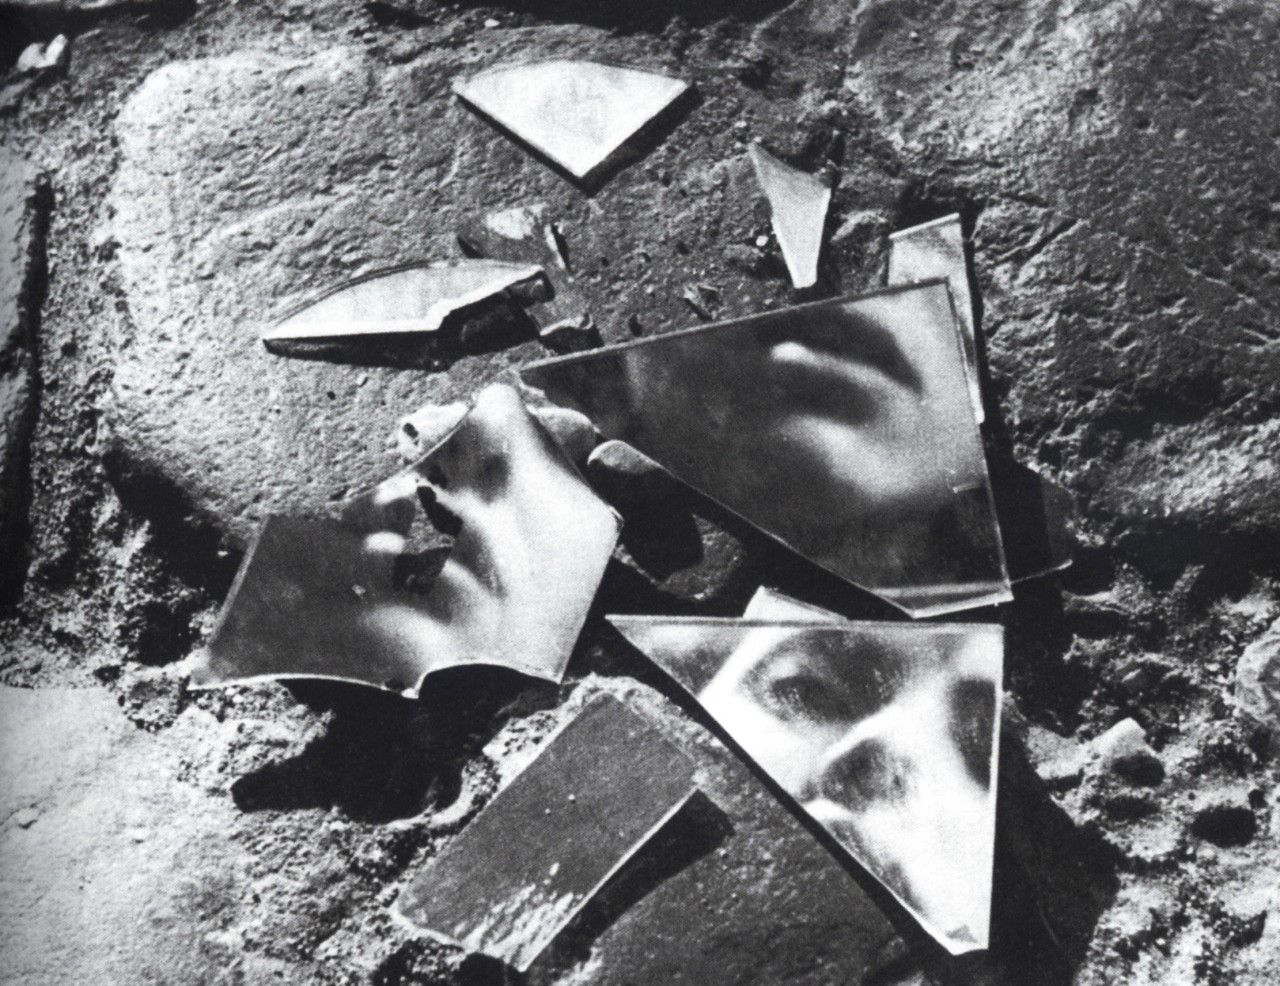 Superstizione (Superstitions). 1949. Italy. Directed by Michelangelo Antonioni